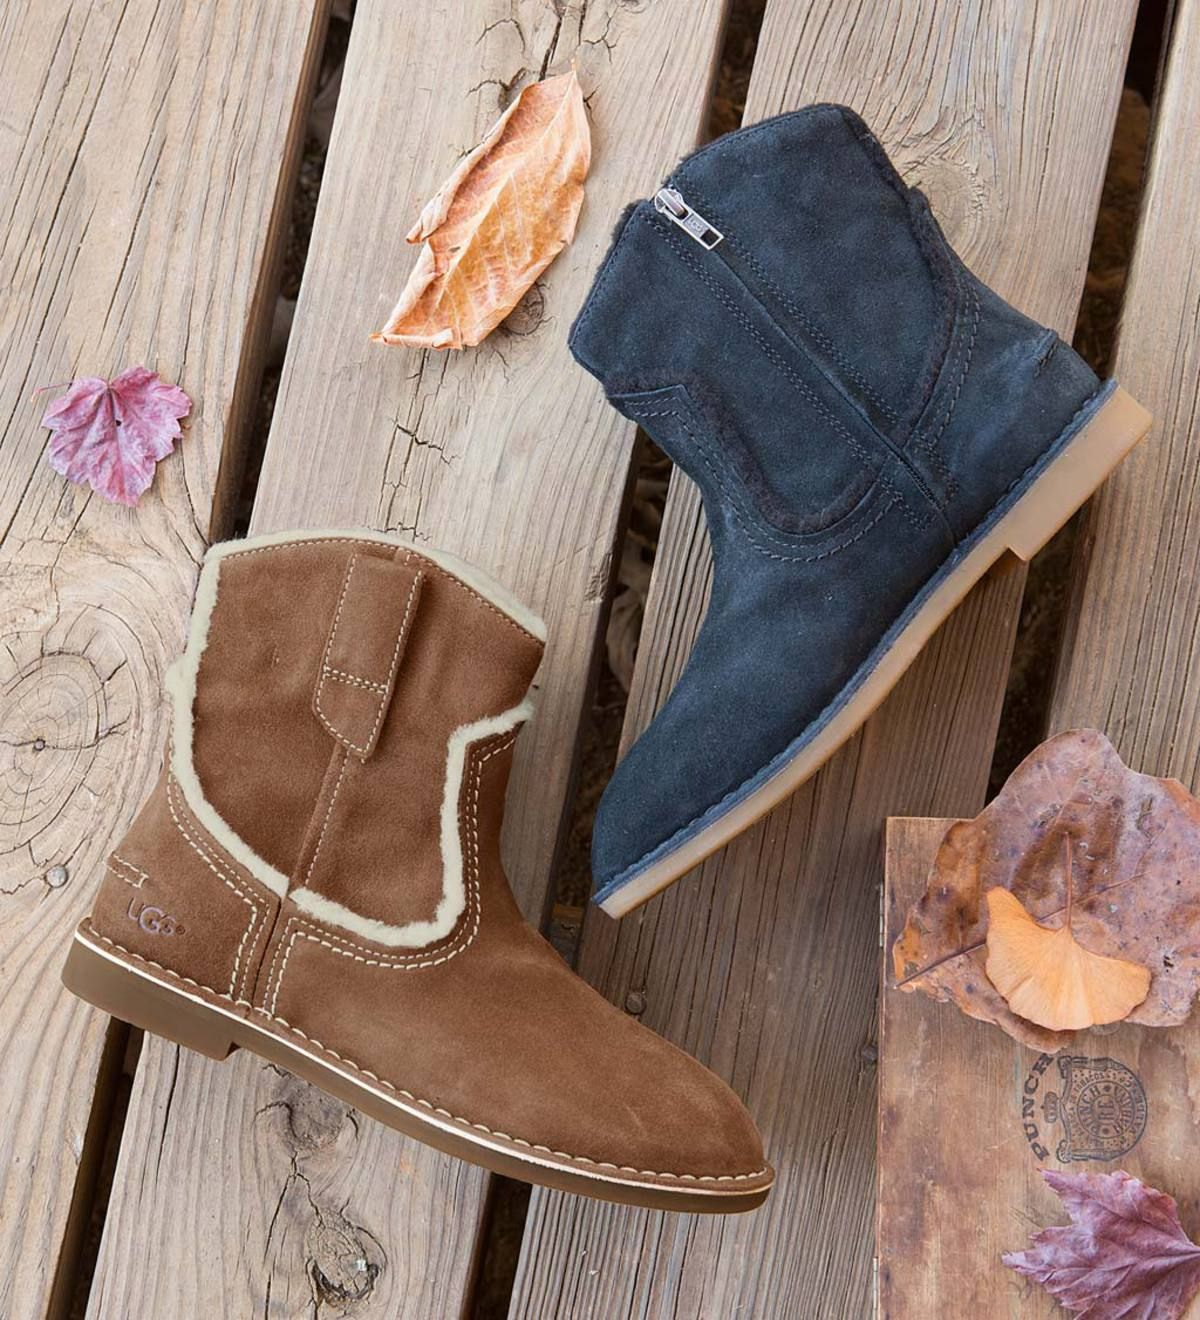 85ca98b2512 UGG Catica Boot is a great mix of styles with a bit Western ...